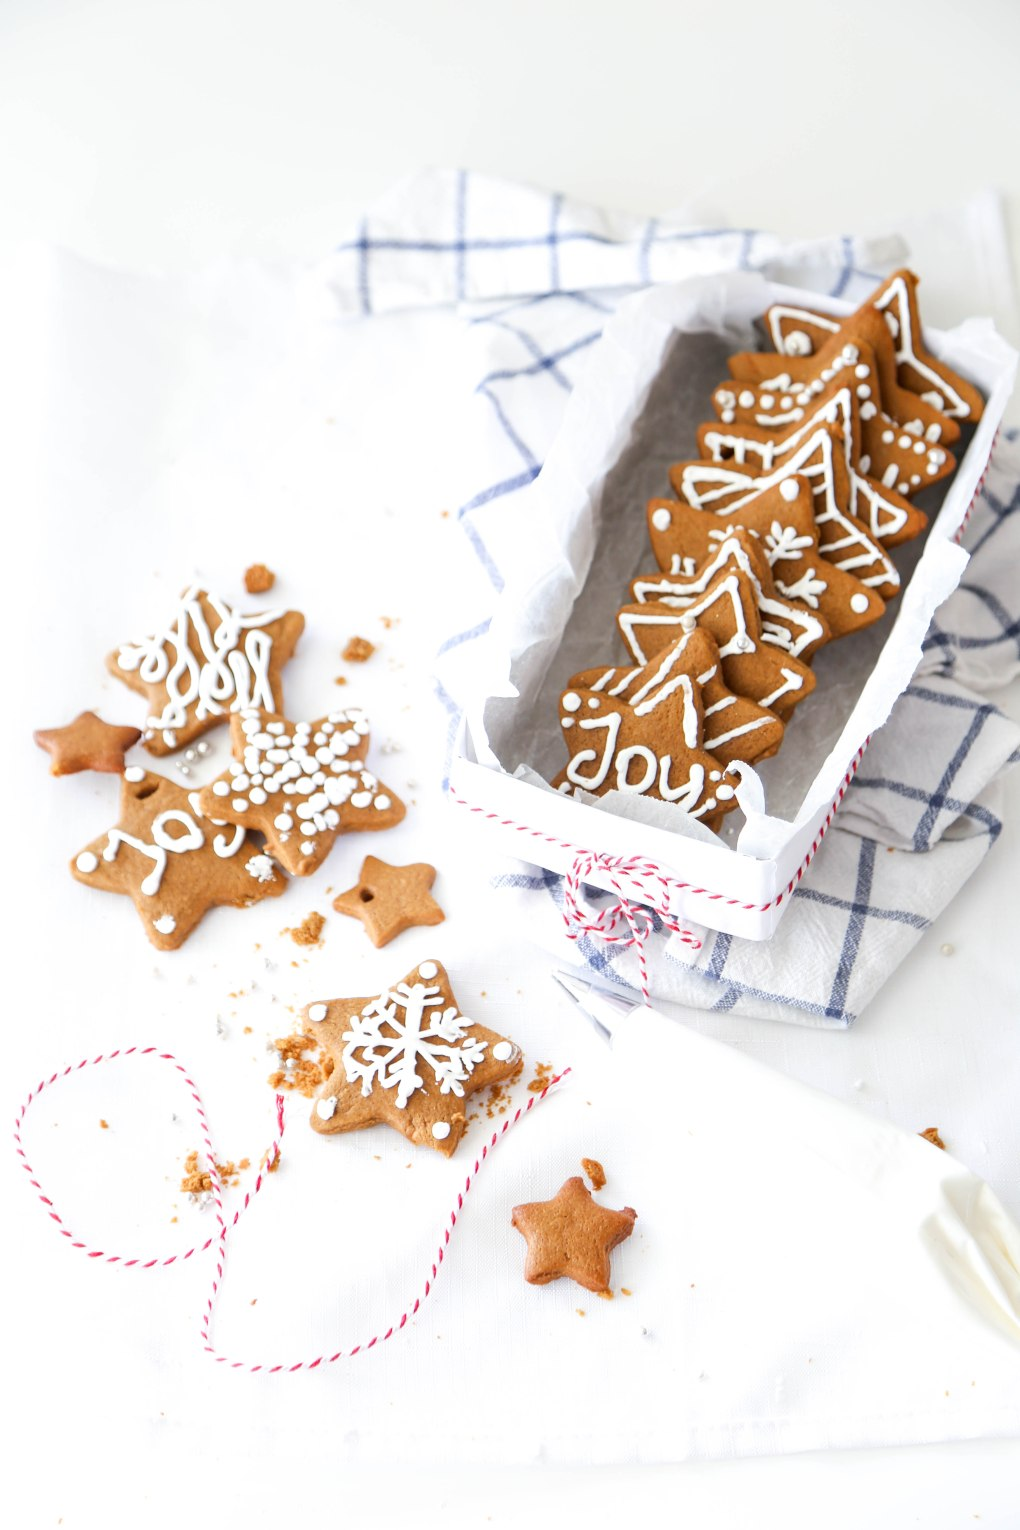 Ginger bread27.jpg